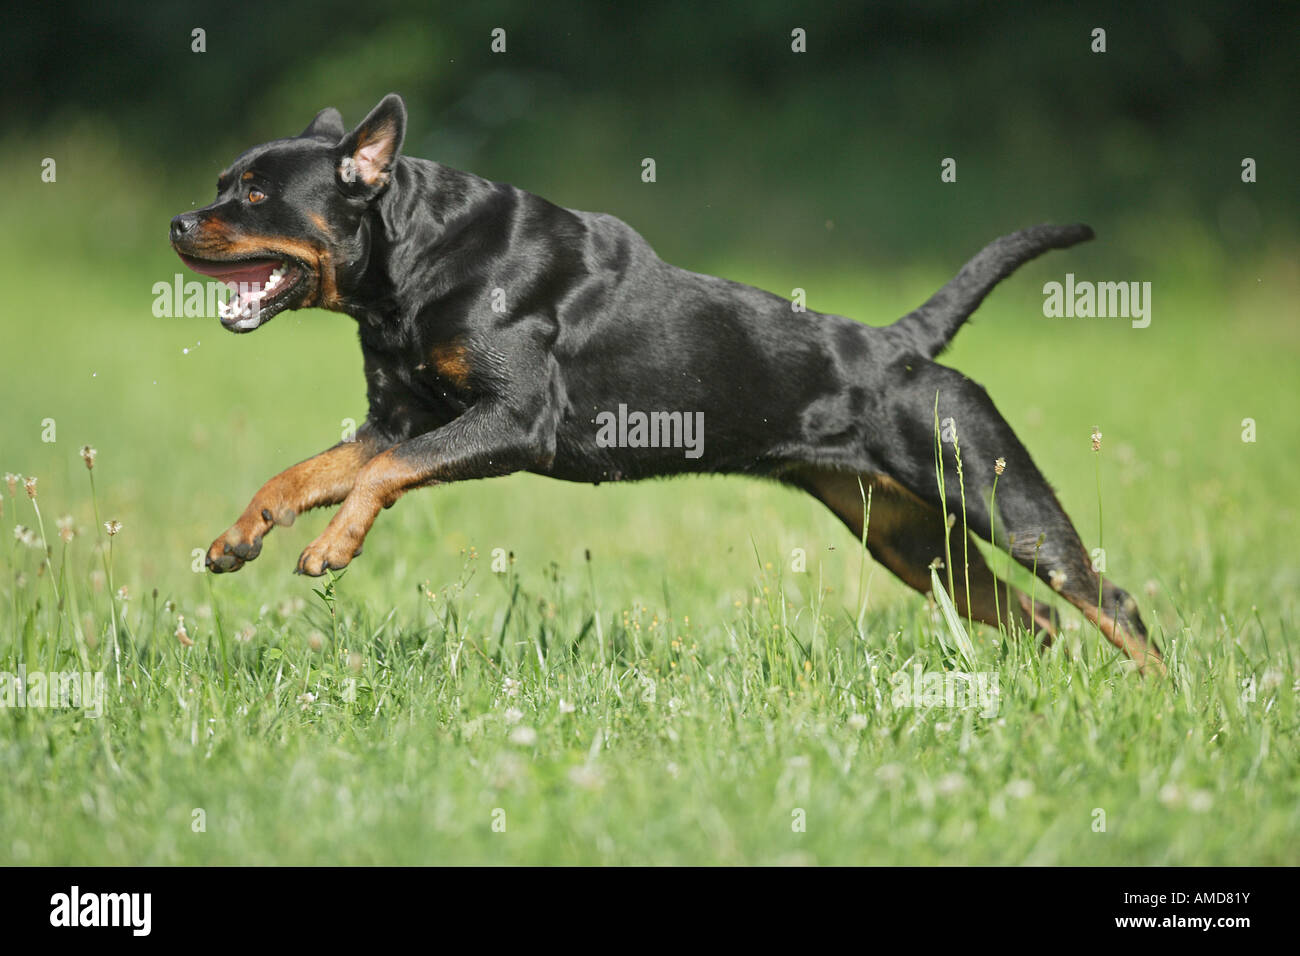 Rottweiler Dog Running On Meadow Stock Photo 15227990 Alamy